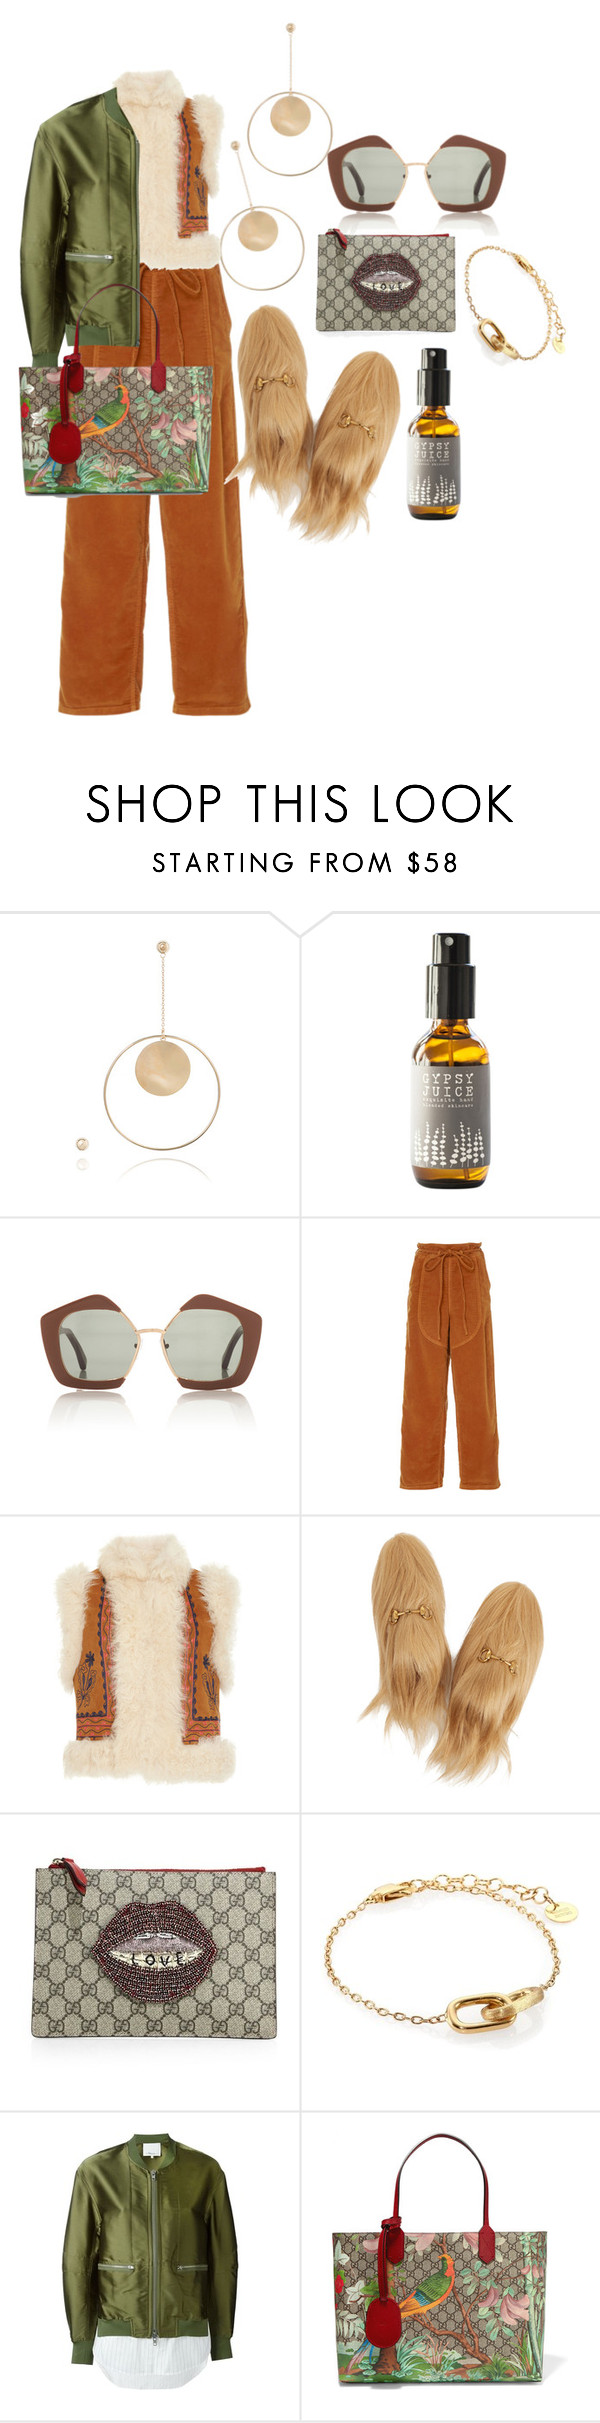 """""""£5893"""" by fendilicious ❤ liked on Polyvore featuring Natasha Schweitzer, Marni, Ulla Johnson, Gucci, Marco Bicego and 3.1 Phillip Lim"""